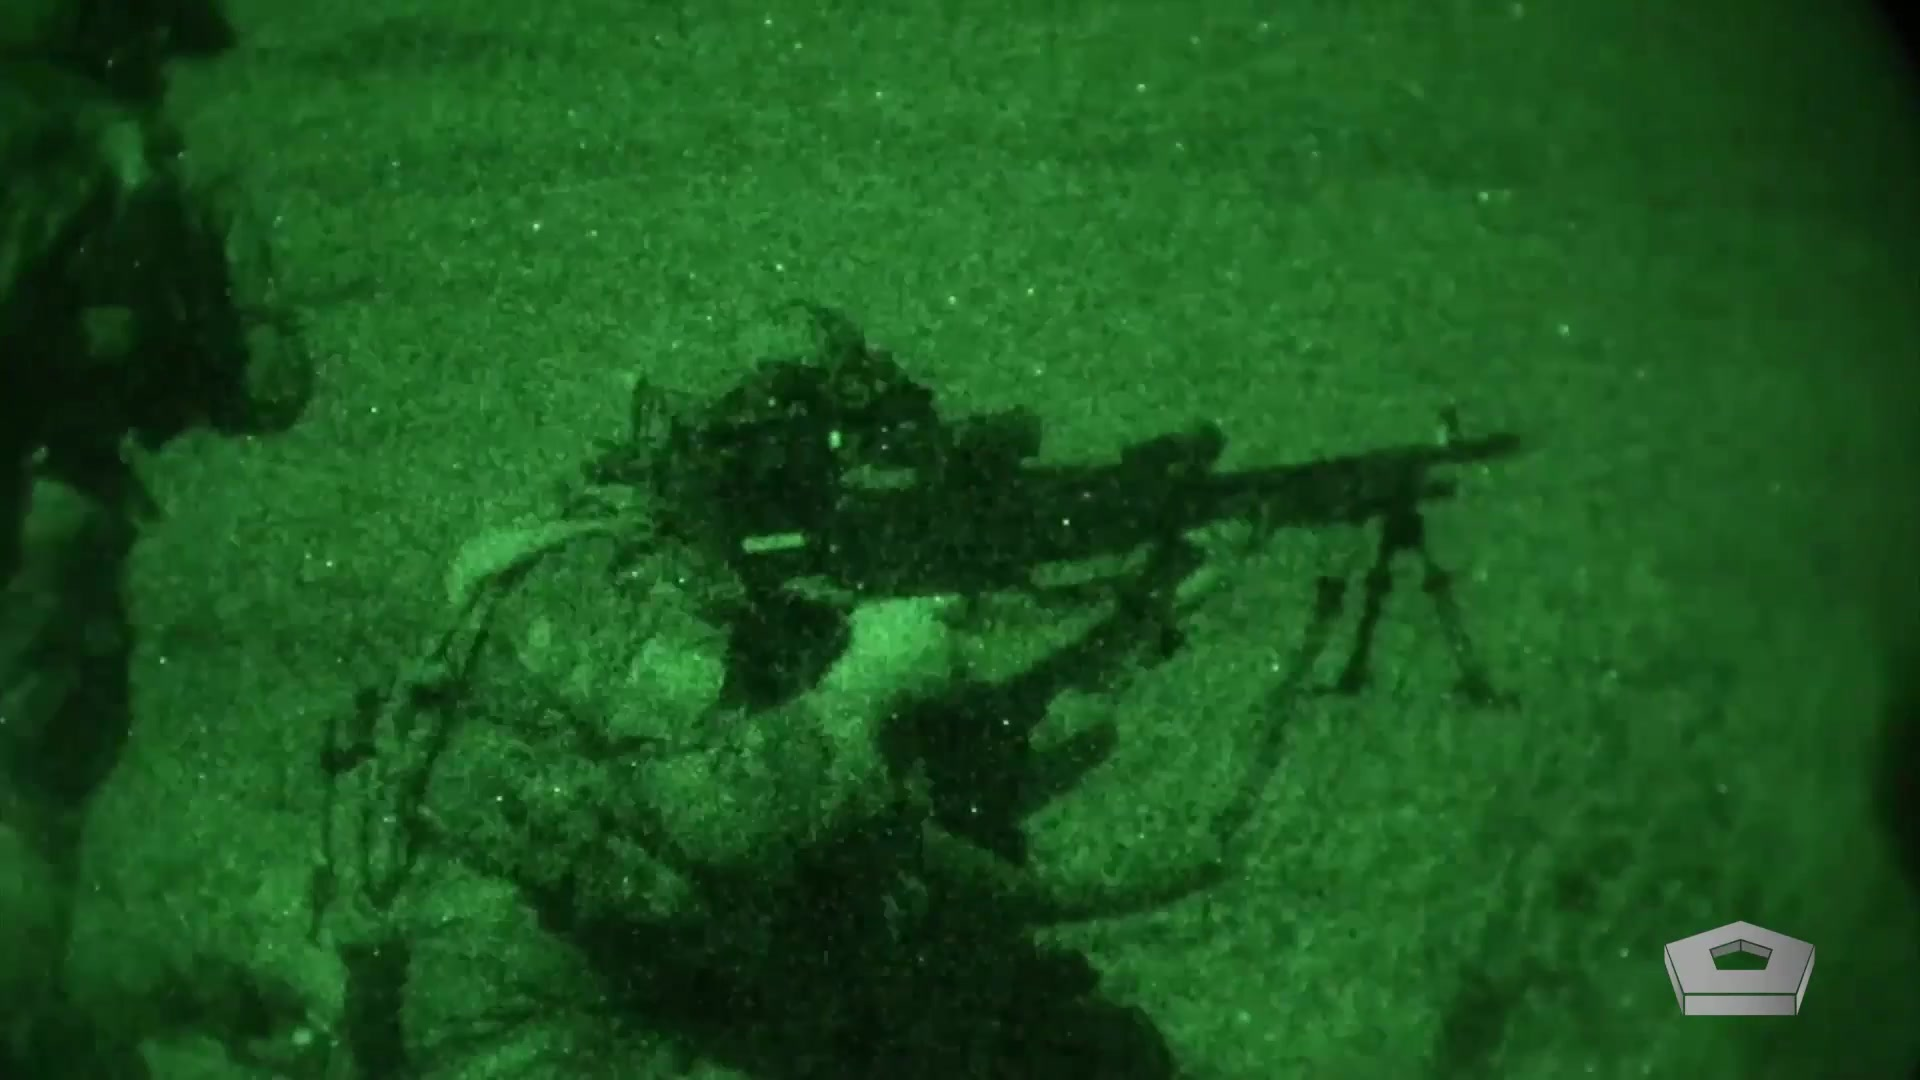 Army Ranger team leaders stress the importance of training with night optical devices.